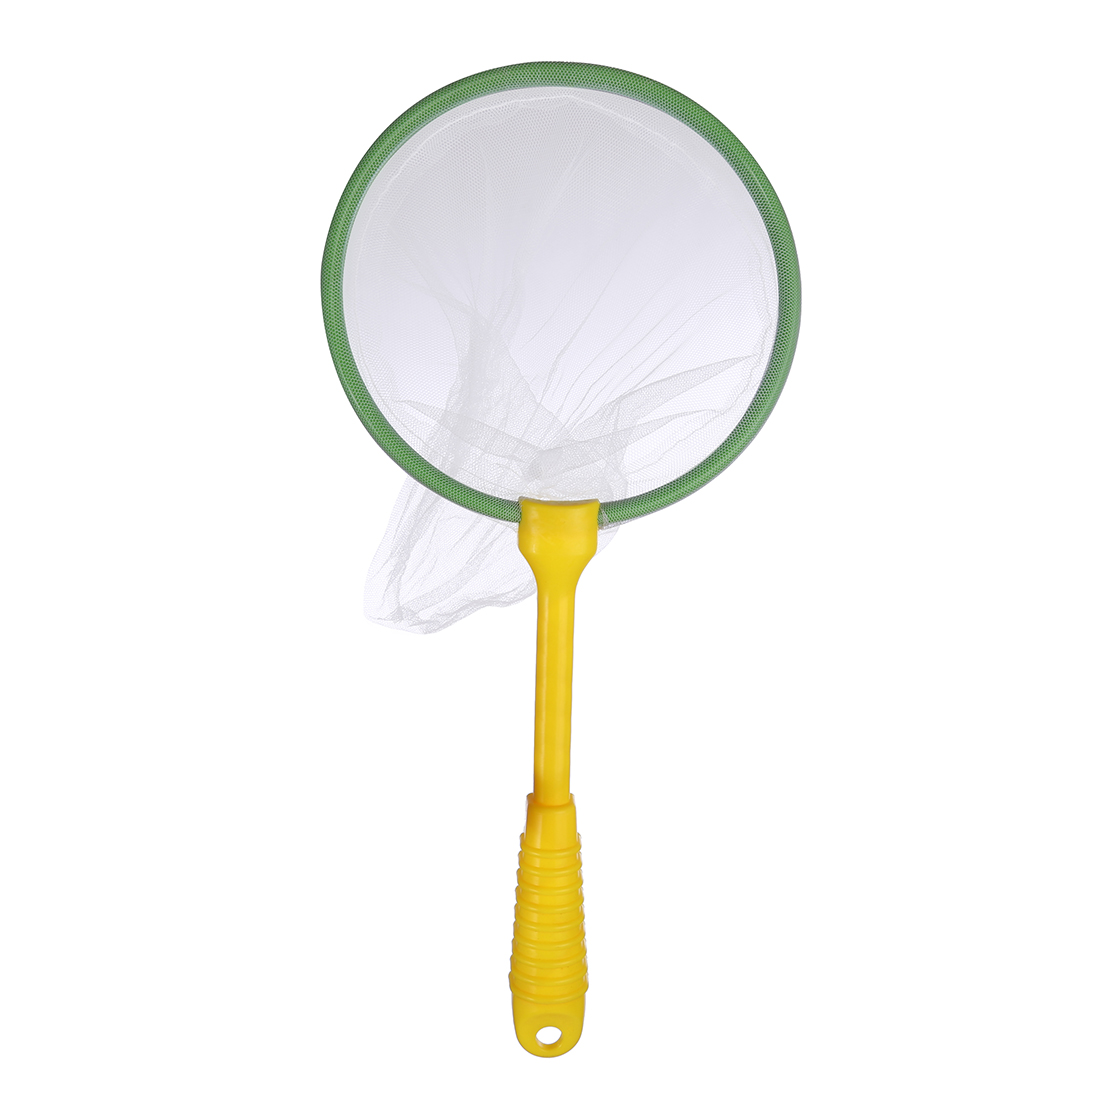 VICTMAX 41cm Kids Butterfly Net Mesh Garden Tool Child Gift for Catching Bugs Insect Garden Suppliers - Yellow GreenVICTMAX 41cm Kids Butterfly Net Mesh Garden Tool Child Gift for Catching Bugs Insect Garden Suppliers - Yellow Green